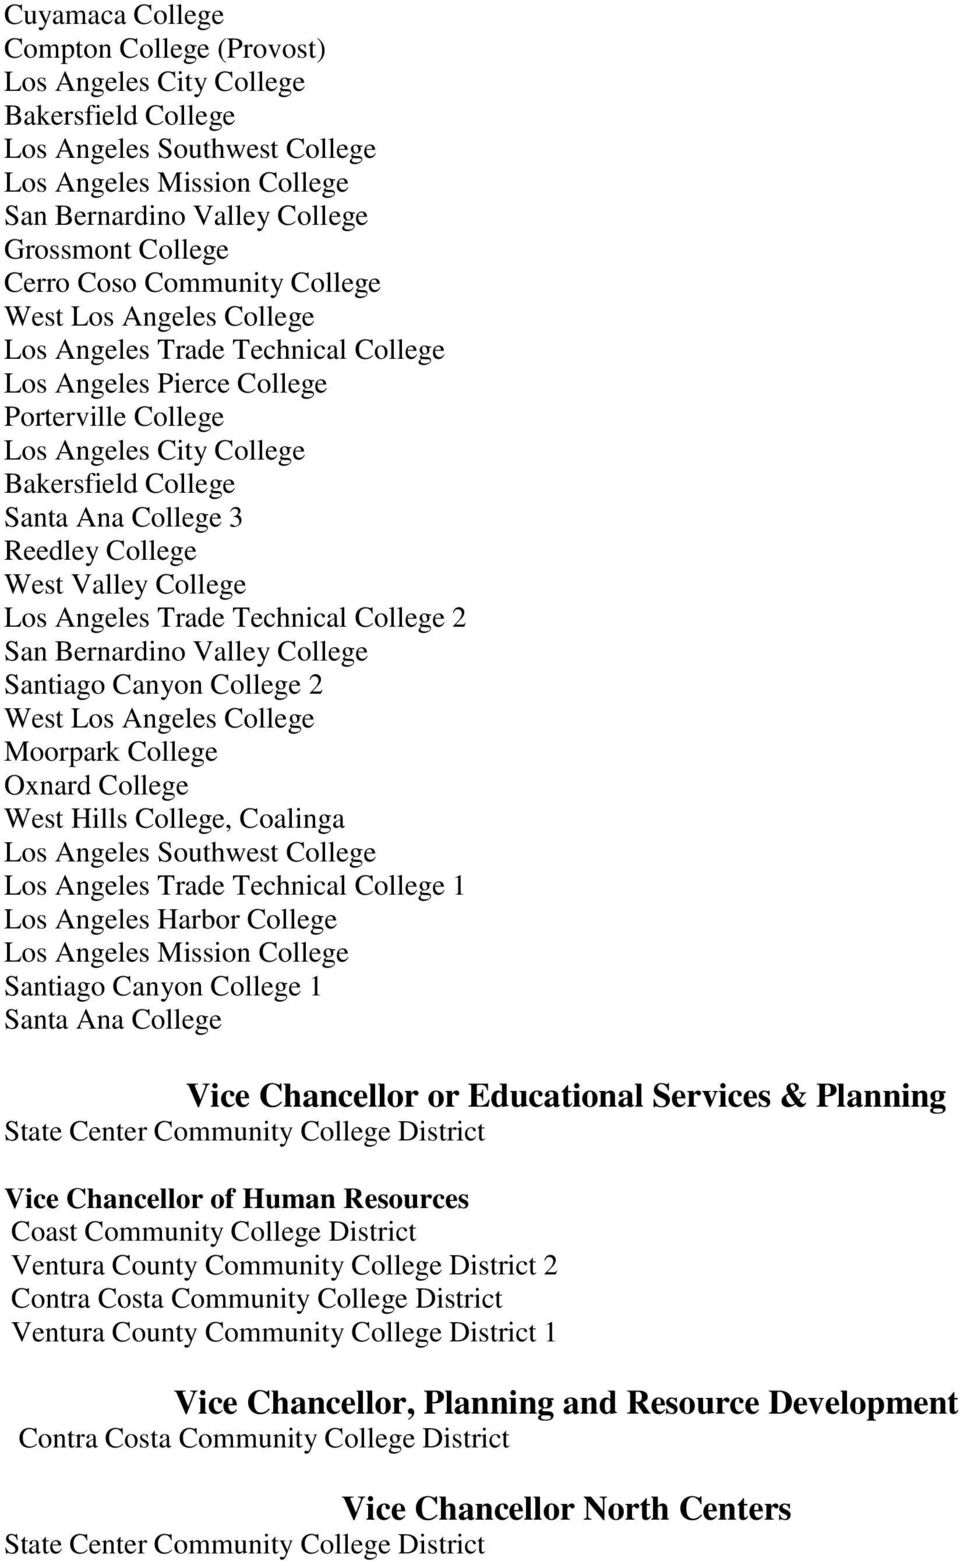 Reedley College West Valley College Los Angeles Trade Technical College 2 San Bernardino Valley College Santiago Canyon College 2 West Los Angeles College Moorpark College Oxnard College West Hills